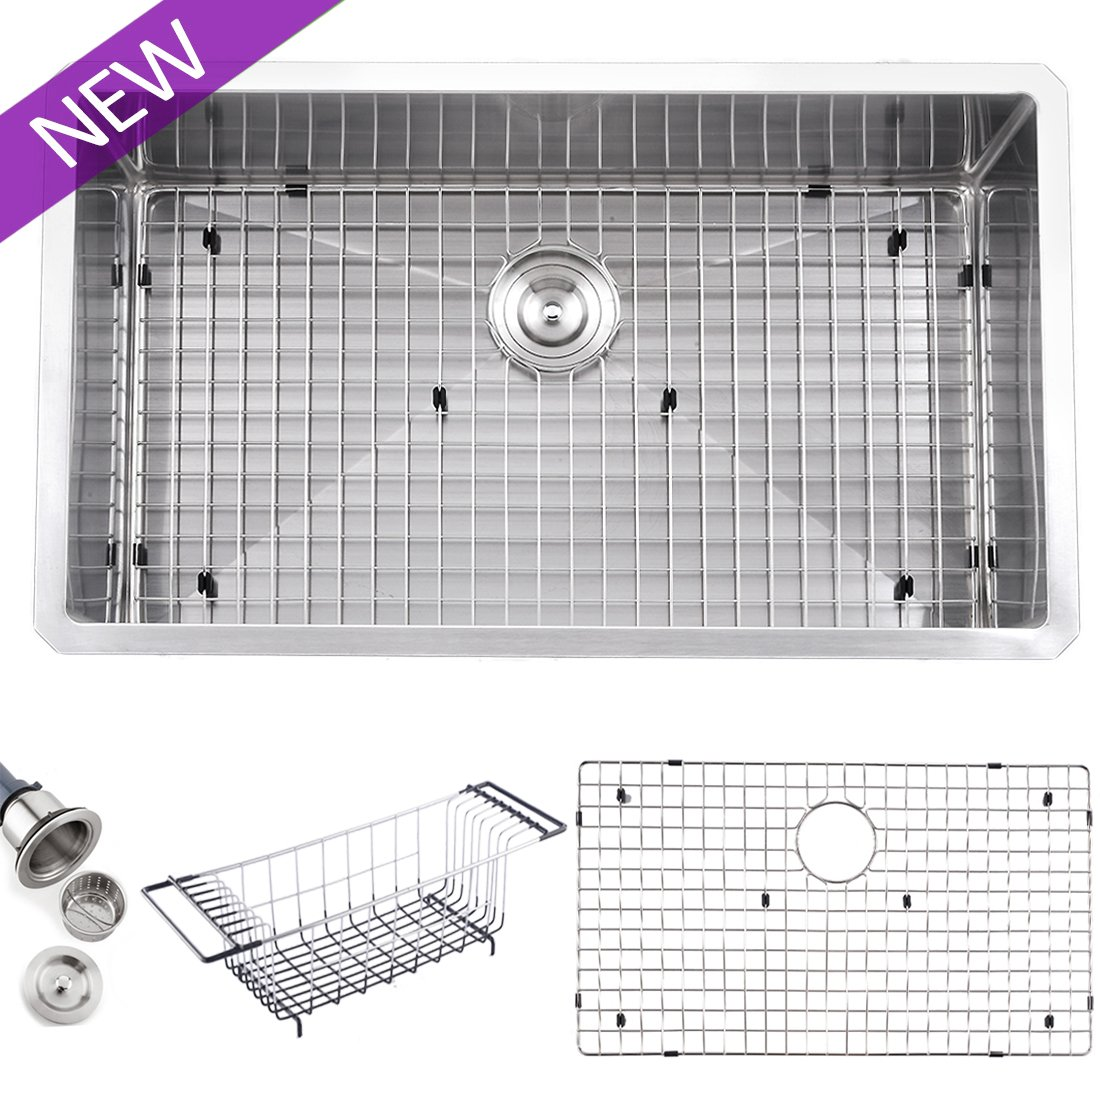 VCCUCINE Modern 32 Inch Single Bowl Undermount 304 Stainless Steel Kitchen Sink, Kitchen Sinks Including Dish Drying Rack and Dish Grid